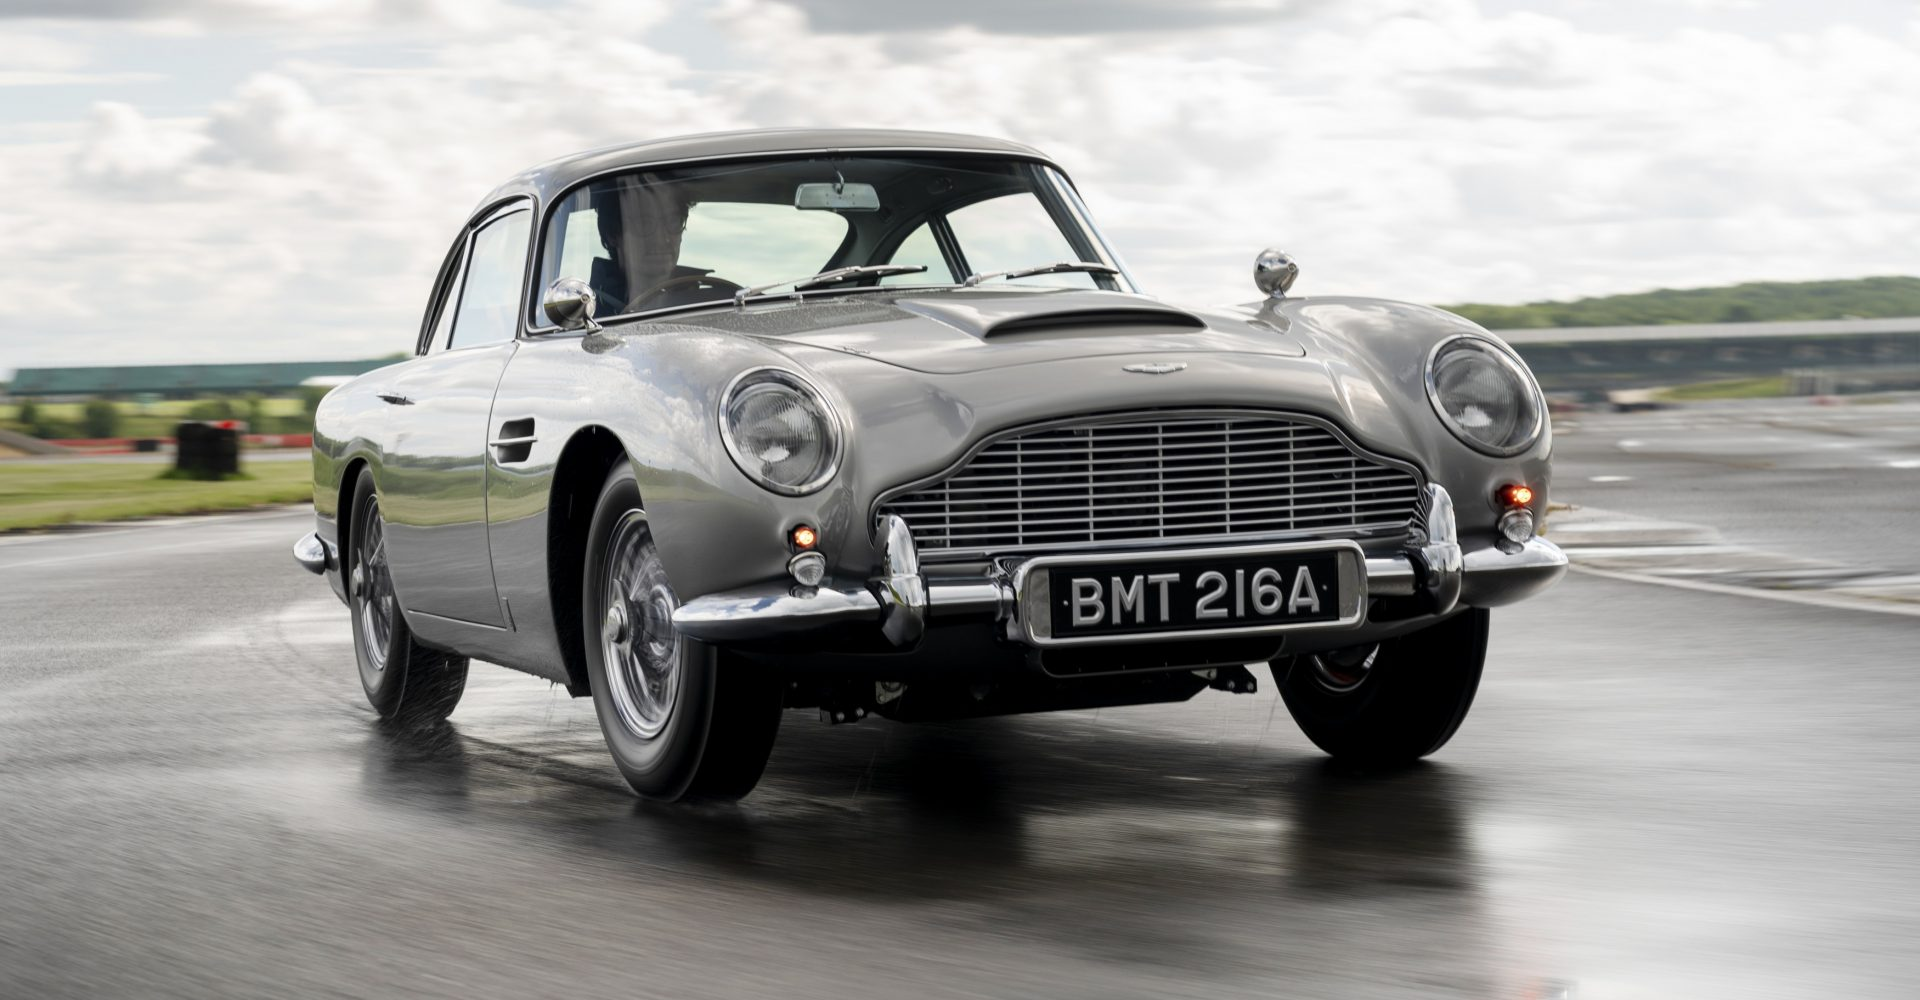 First Bond-inspired Aston Martin DB5 Continuation model completed